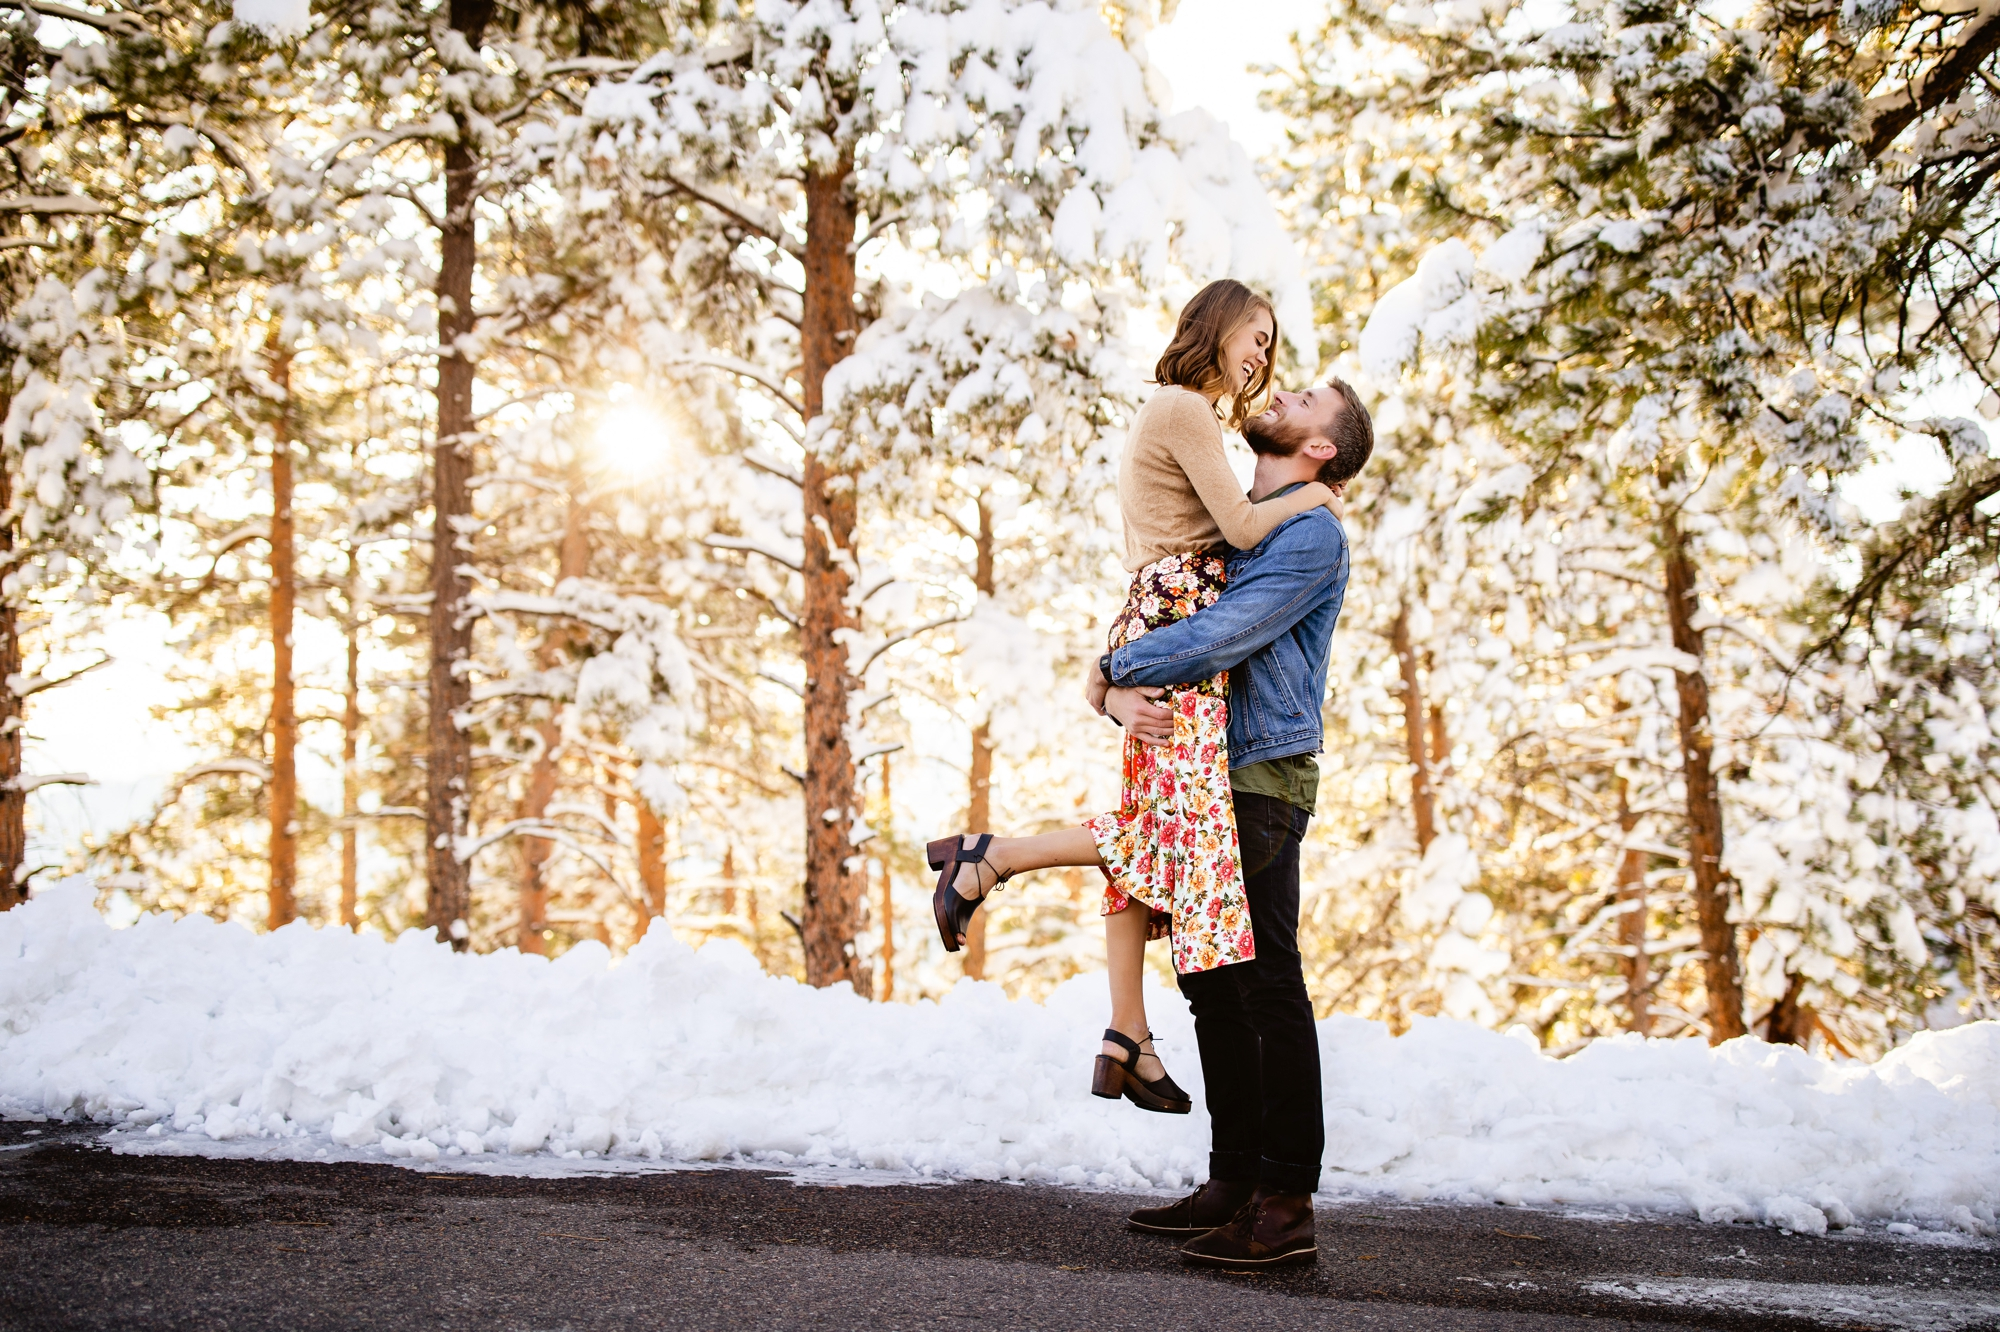 Snow Day Engagement Portraits | Mount Falcon West Trailhead Engagement | Taylor Nicole Photography -  Mount Falcon Engagement Photos, Morrison Colorado Engagement Photographer, Indian Hills Colorado En - #Day #Engagement #EngagementPhotosclassy #EngagementPhotosindian #EngagementPhotoswoods #Falcon #formalEngagementPhotos #Mount #naturalEngagementPhotos #Nicole #Photography #plussizeEngagementPhotos #Portraits #rusticEngagementPhotos #Snow #Taylor #Trailhead #west #whattowearforEngagementPhotos